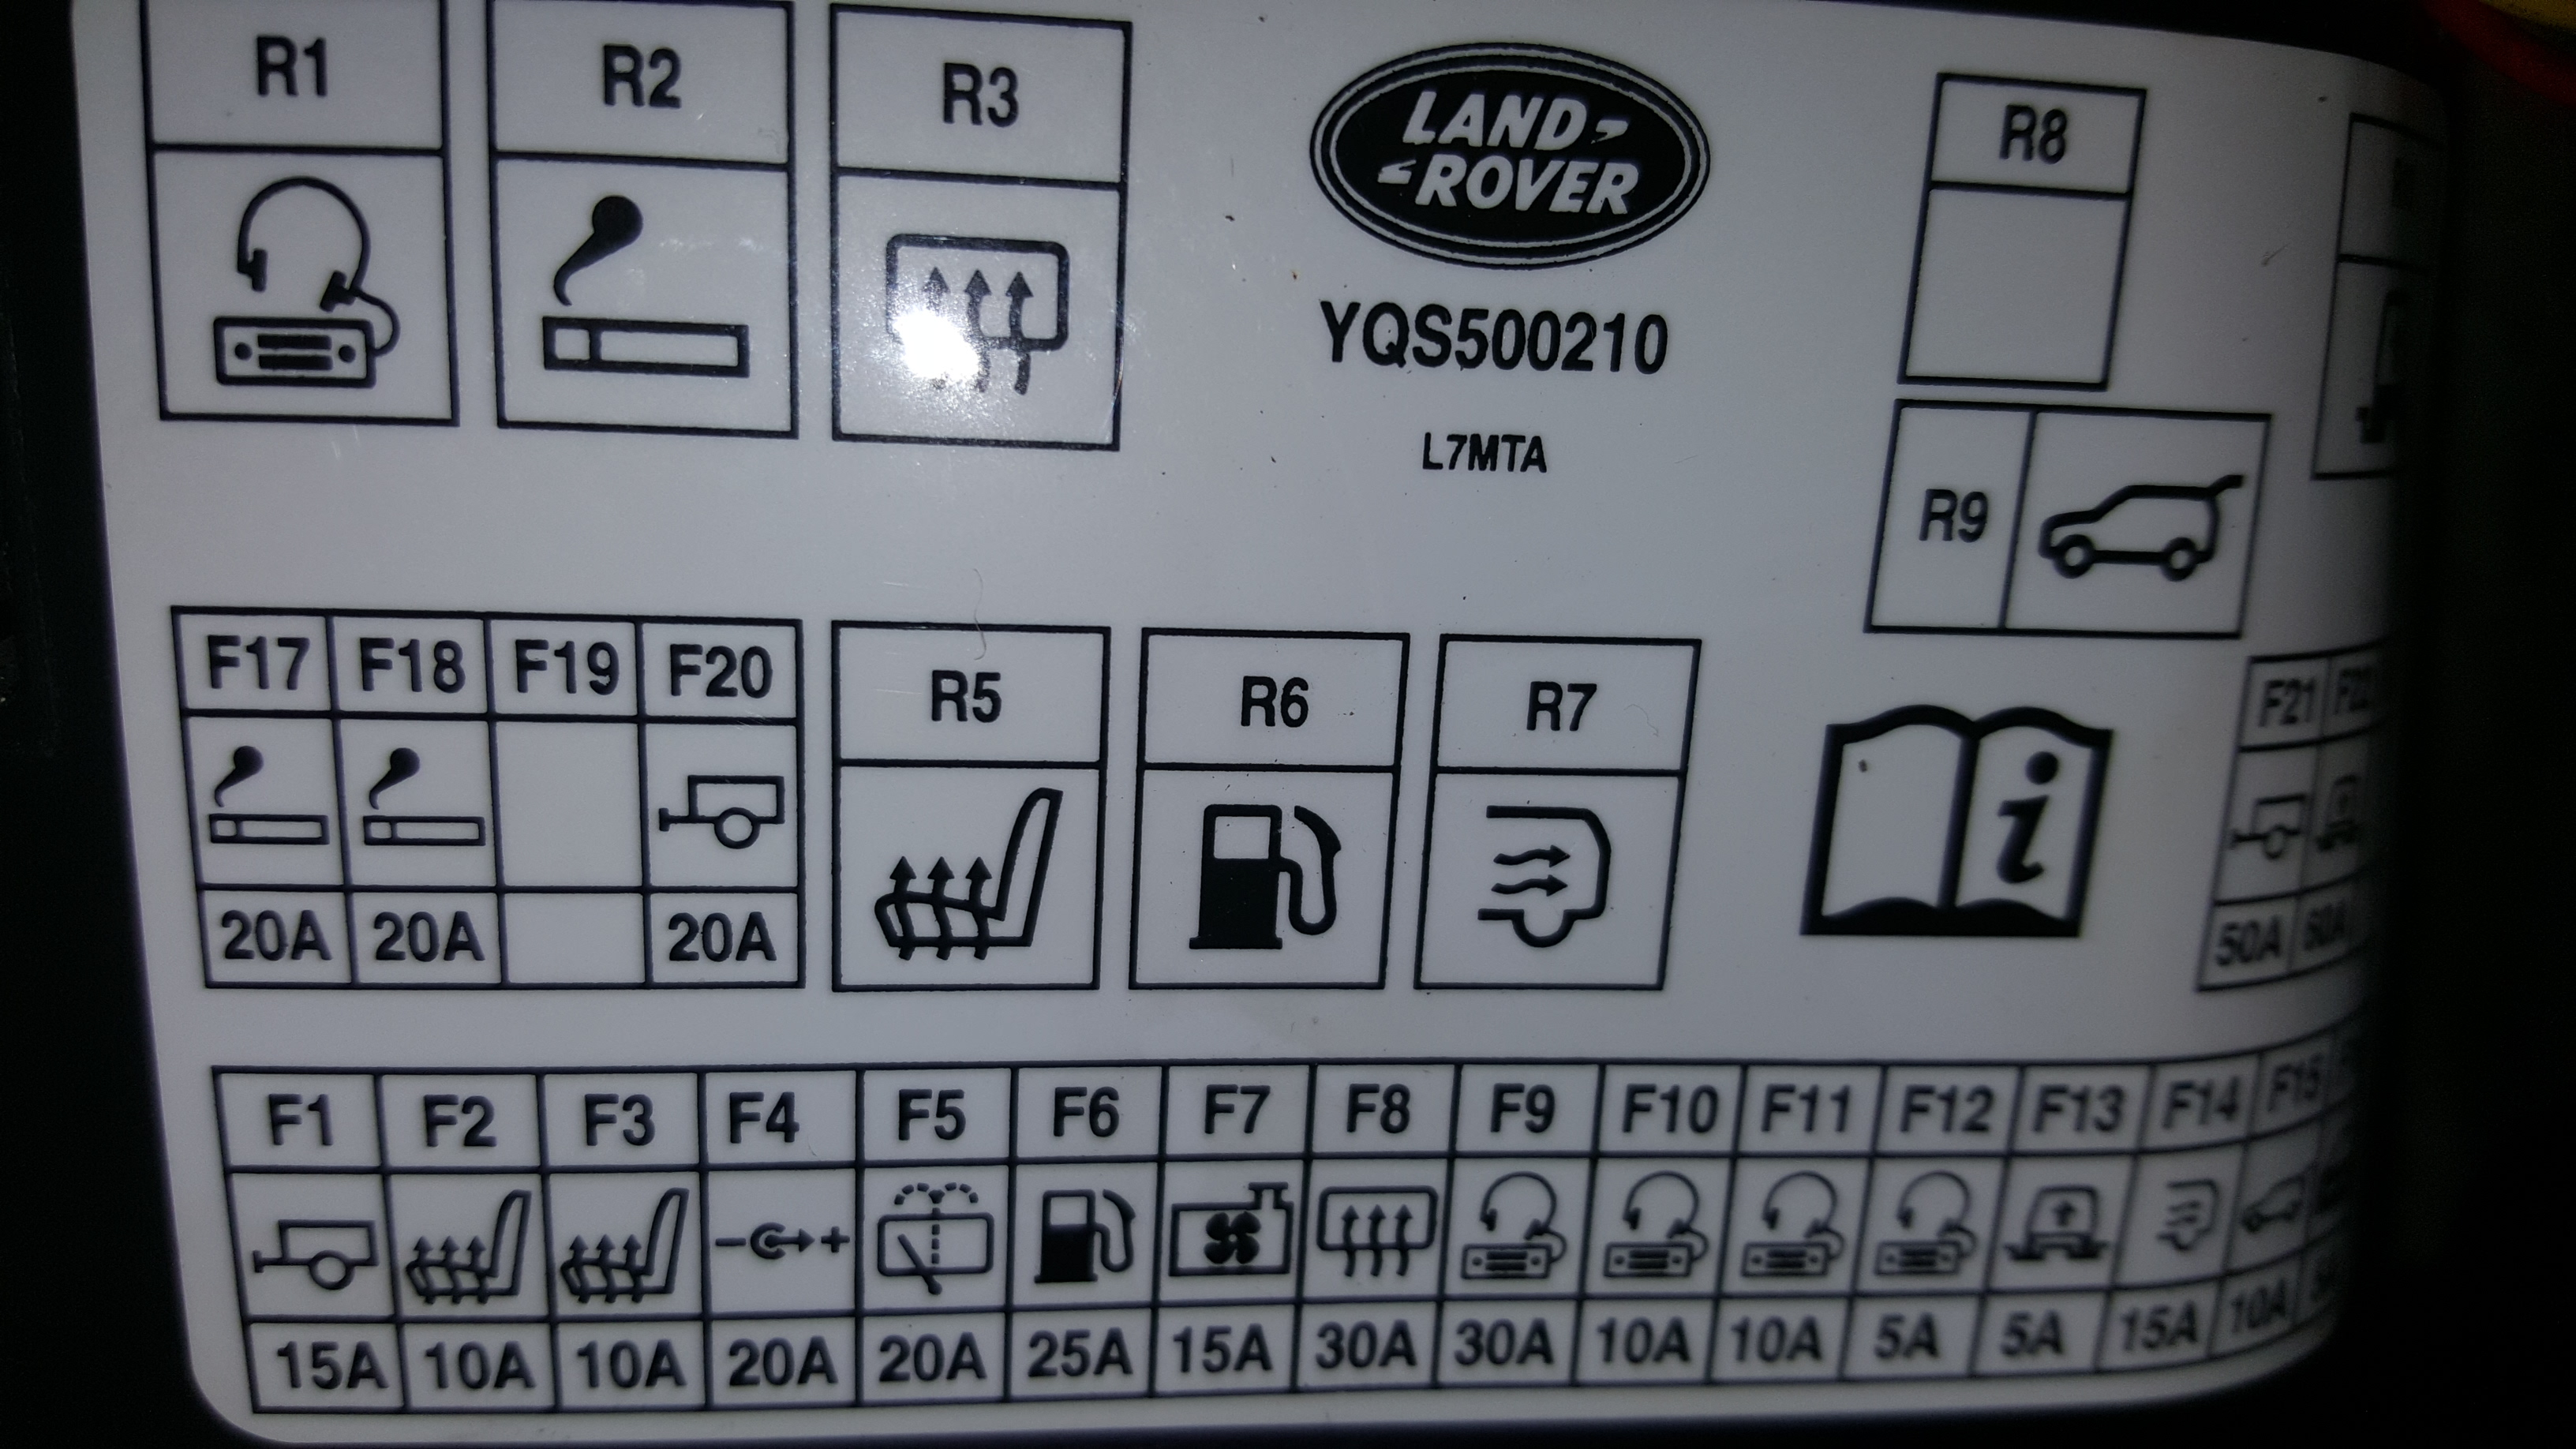 range rover p38 fuse layout looking for rearview camera fuse in rear fusebox  06 hse  rearview camera fuse in rear fusebox